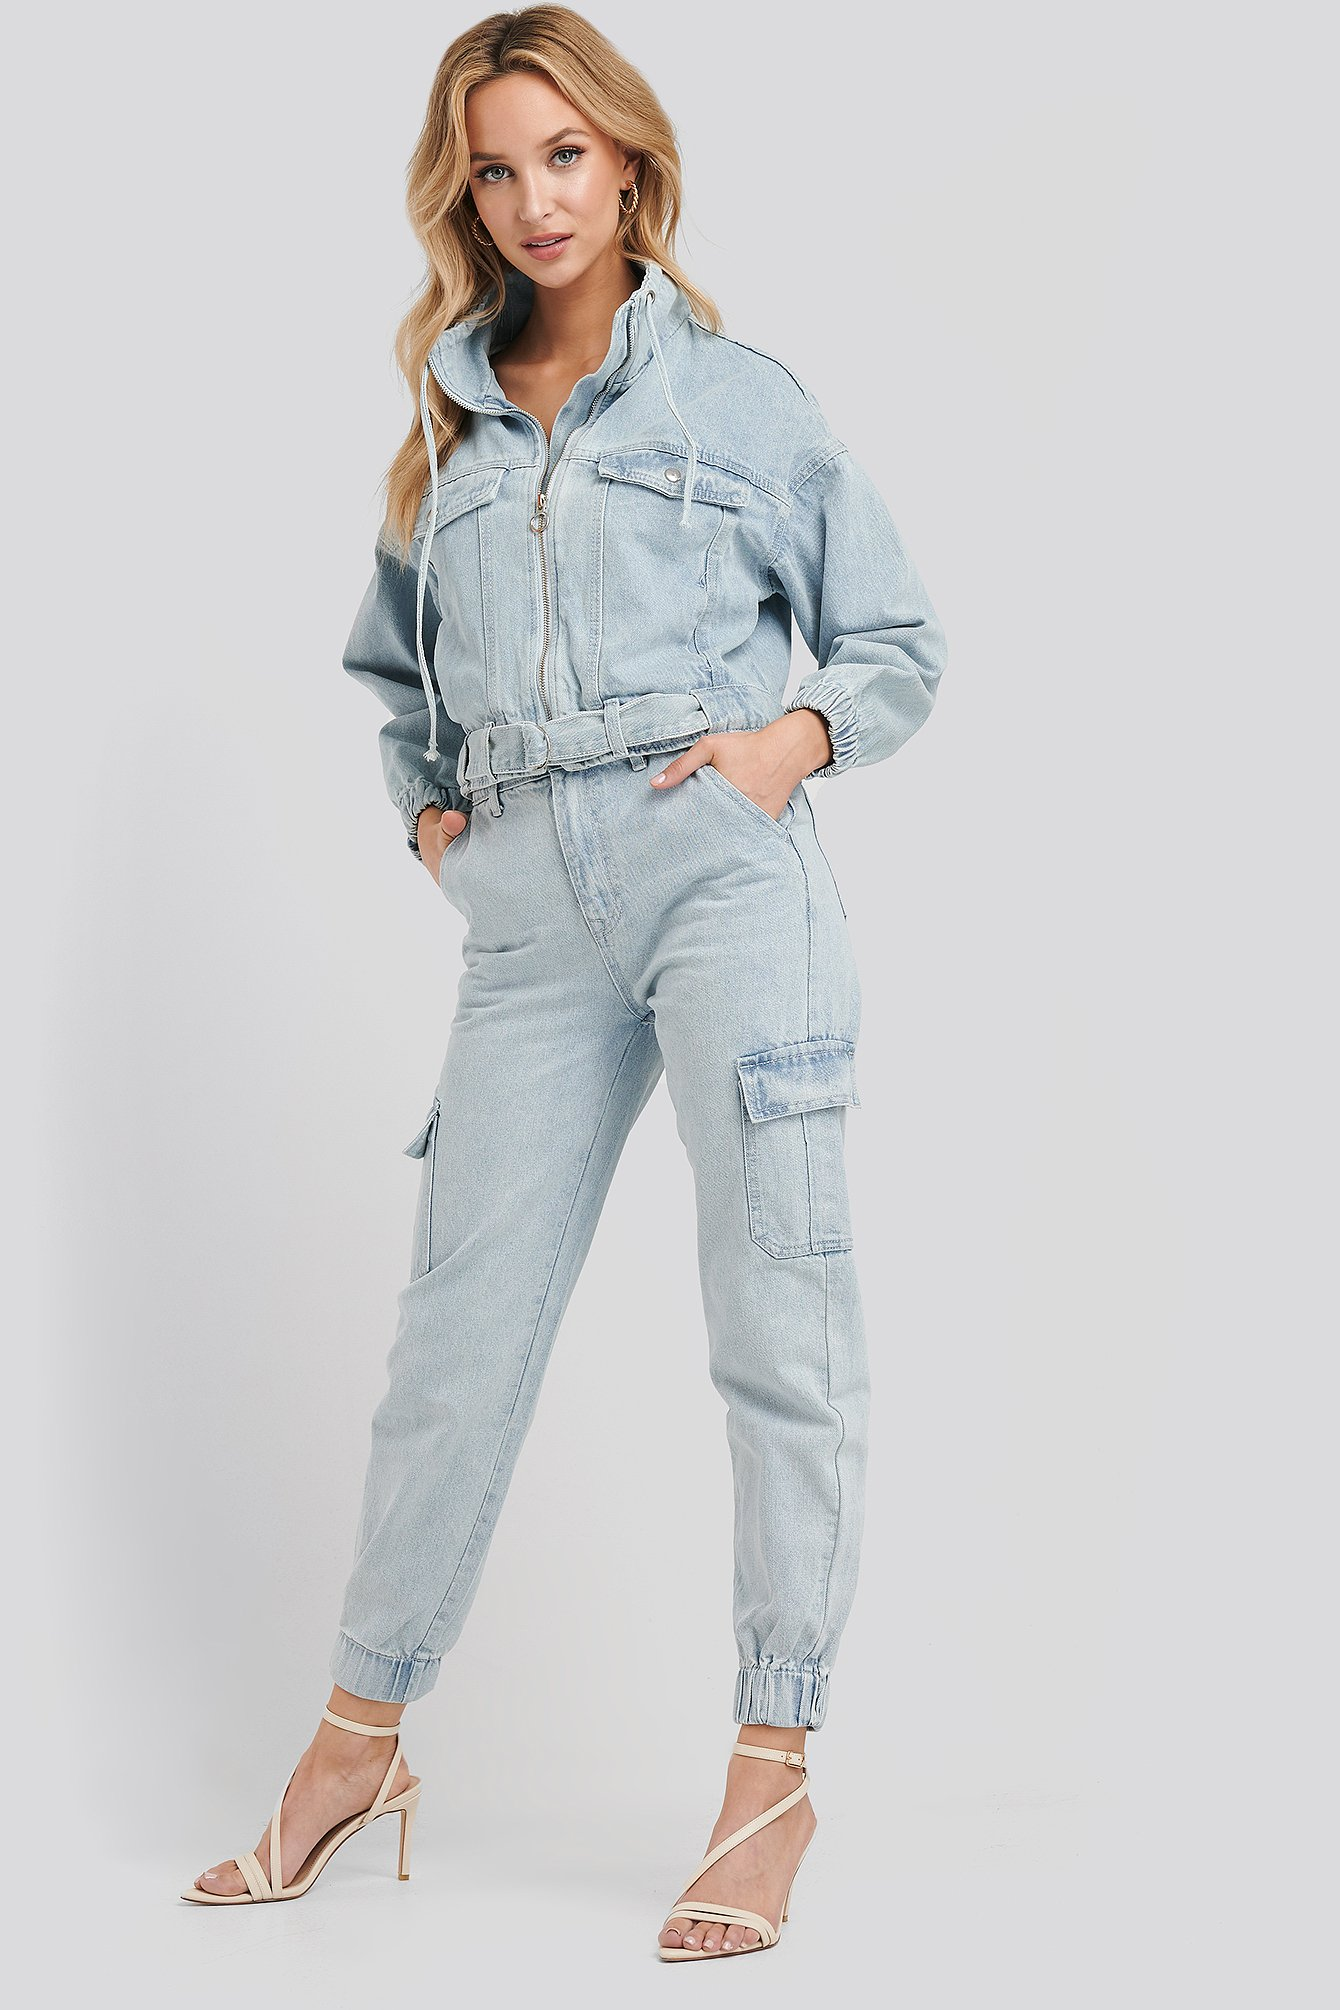 adika x na-kd -  Stella Denim Cargo Pants - Blue